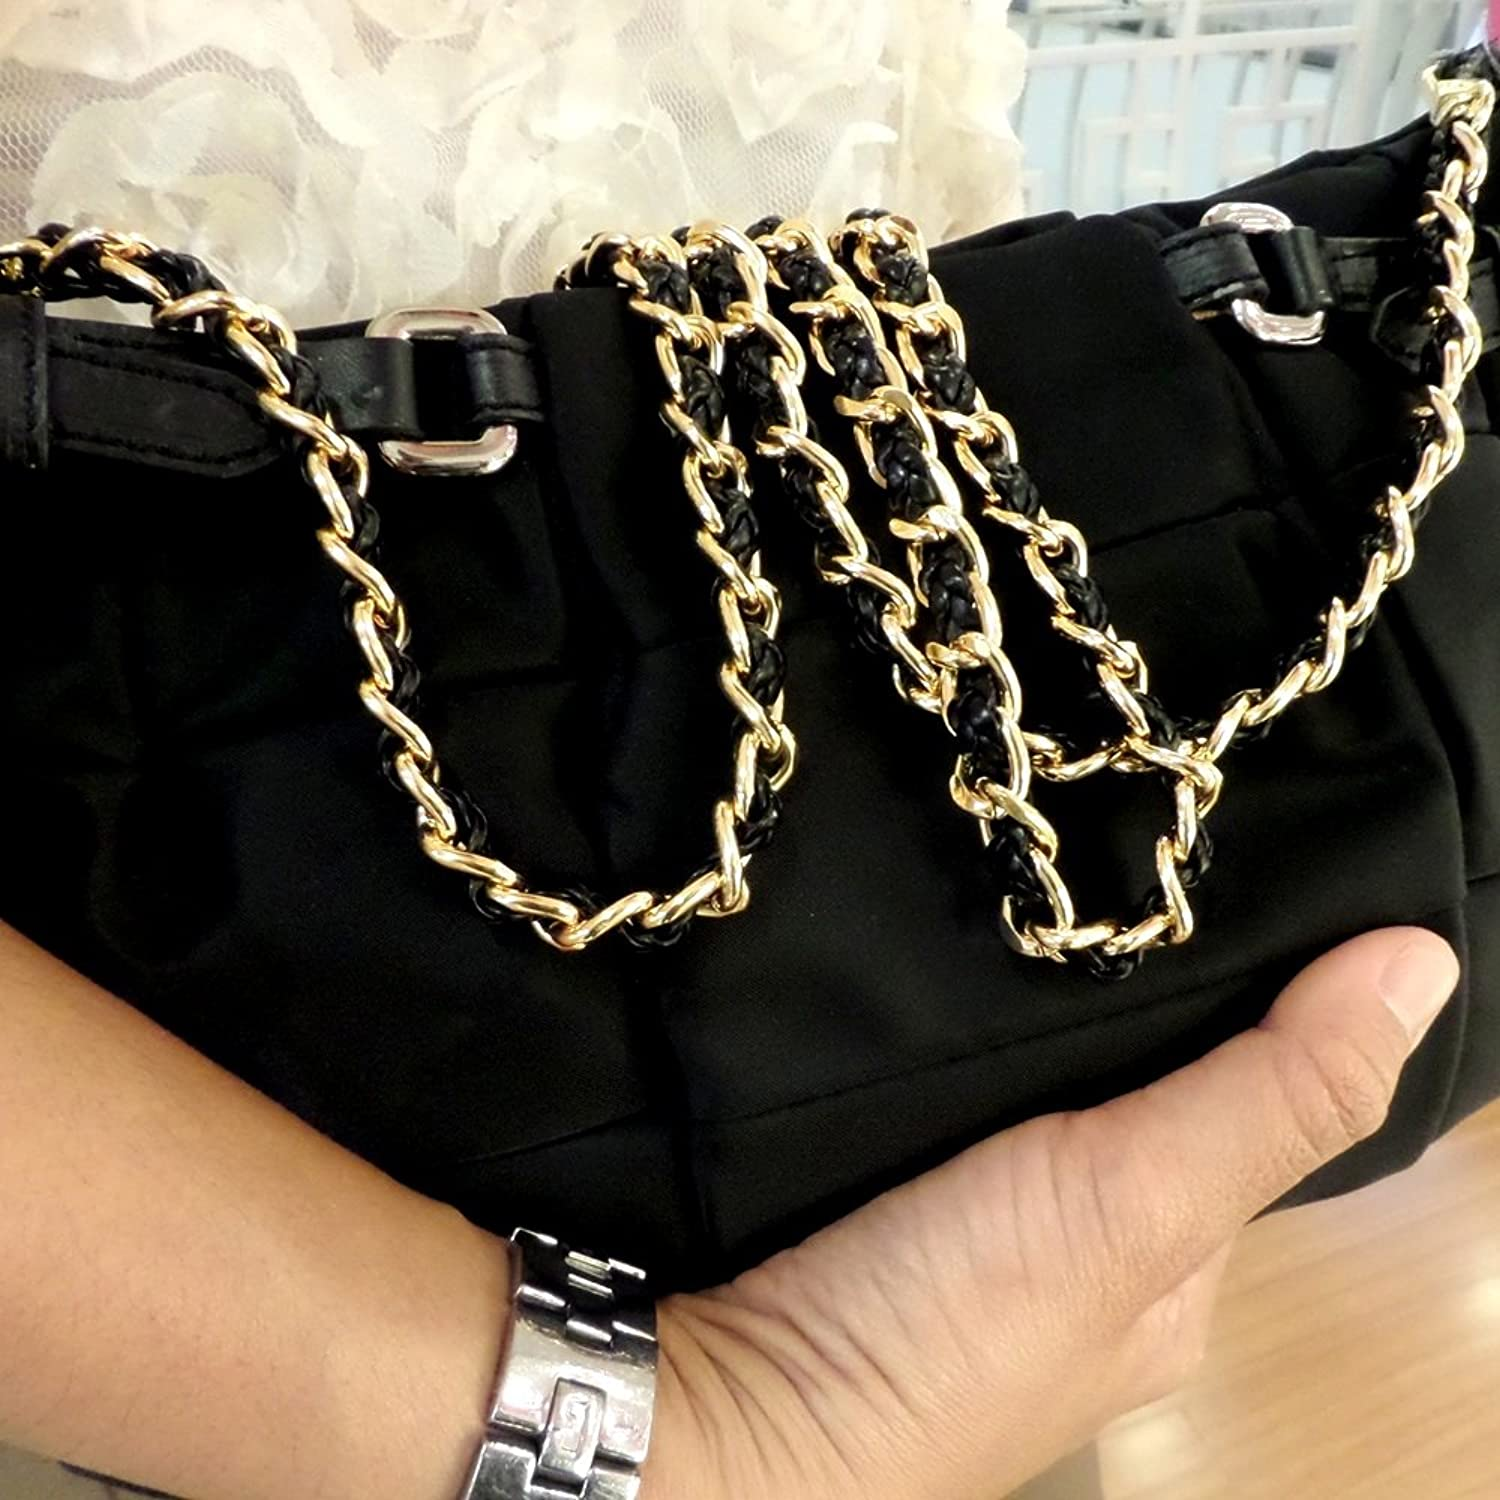 "44"" SHOULDER STRAP CROSS-BODY CHAIN GOLD PLATED SYNTHETIC LEATHER BRAID REPLACEMENT FOR DIY BAG HANDBAG"